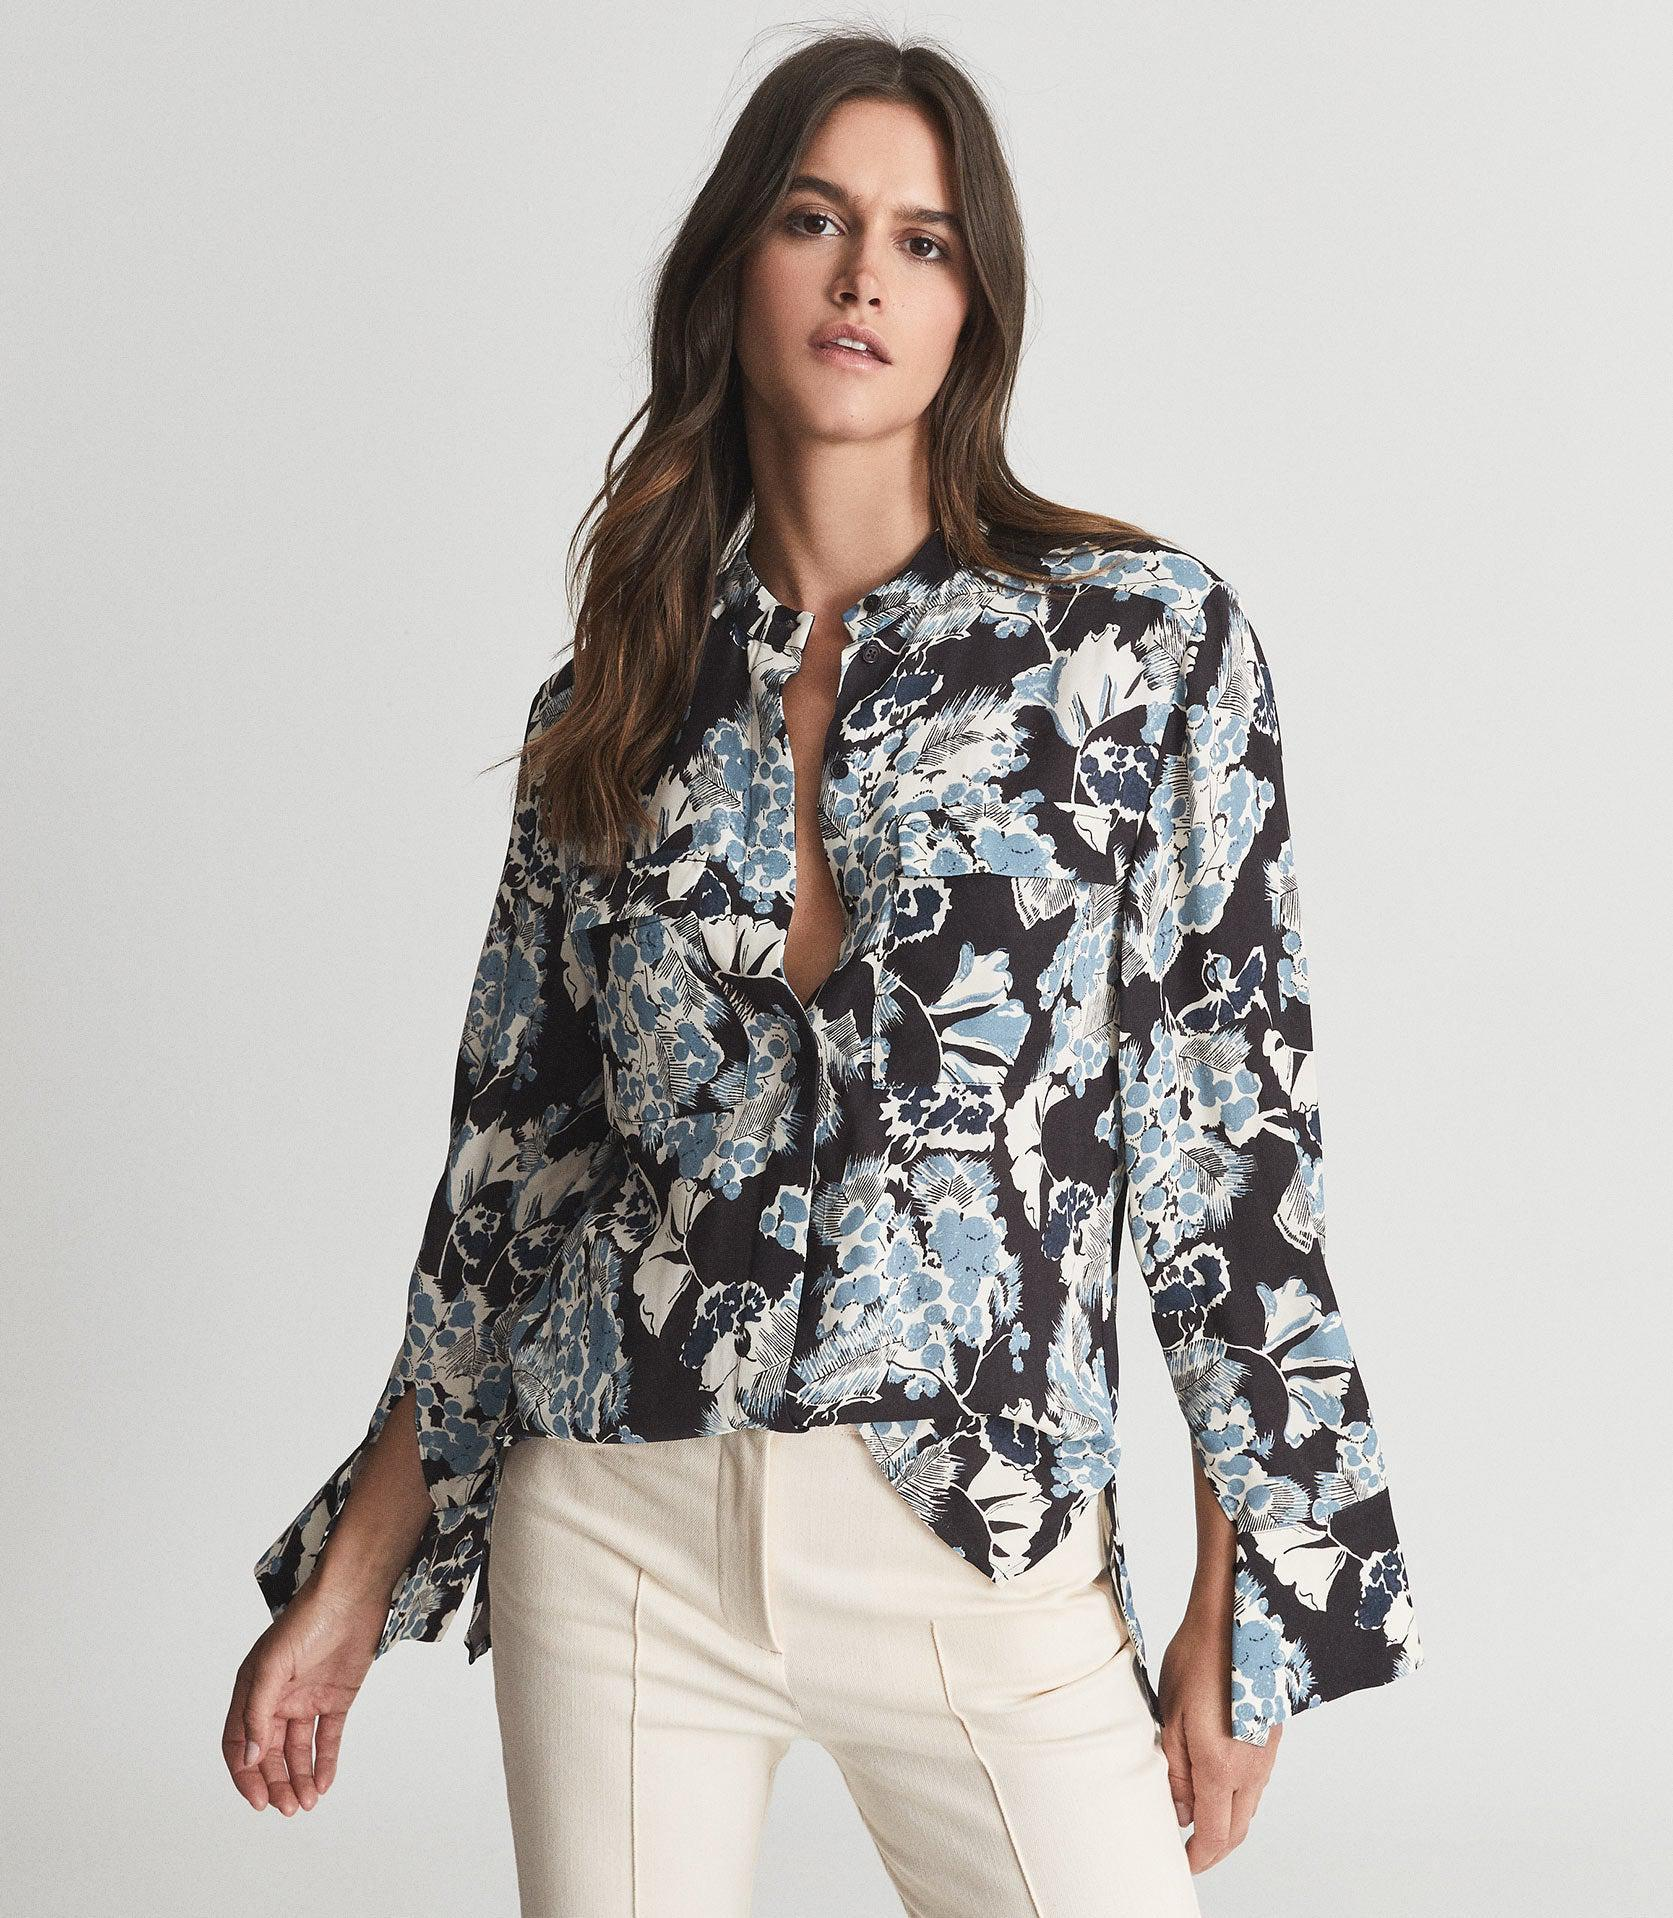 MIKA - FLORAL PRINTED BLOUSE 1